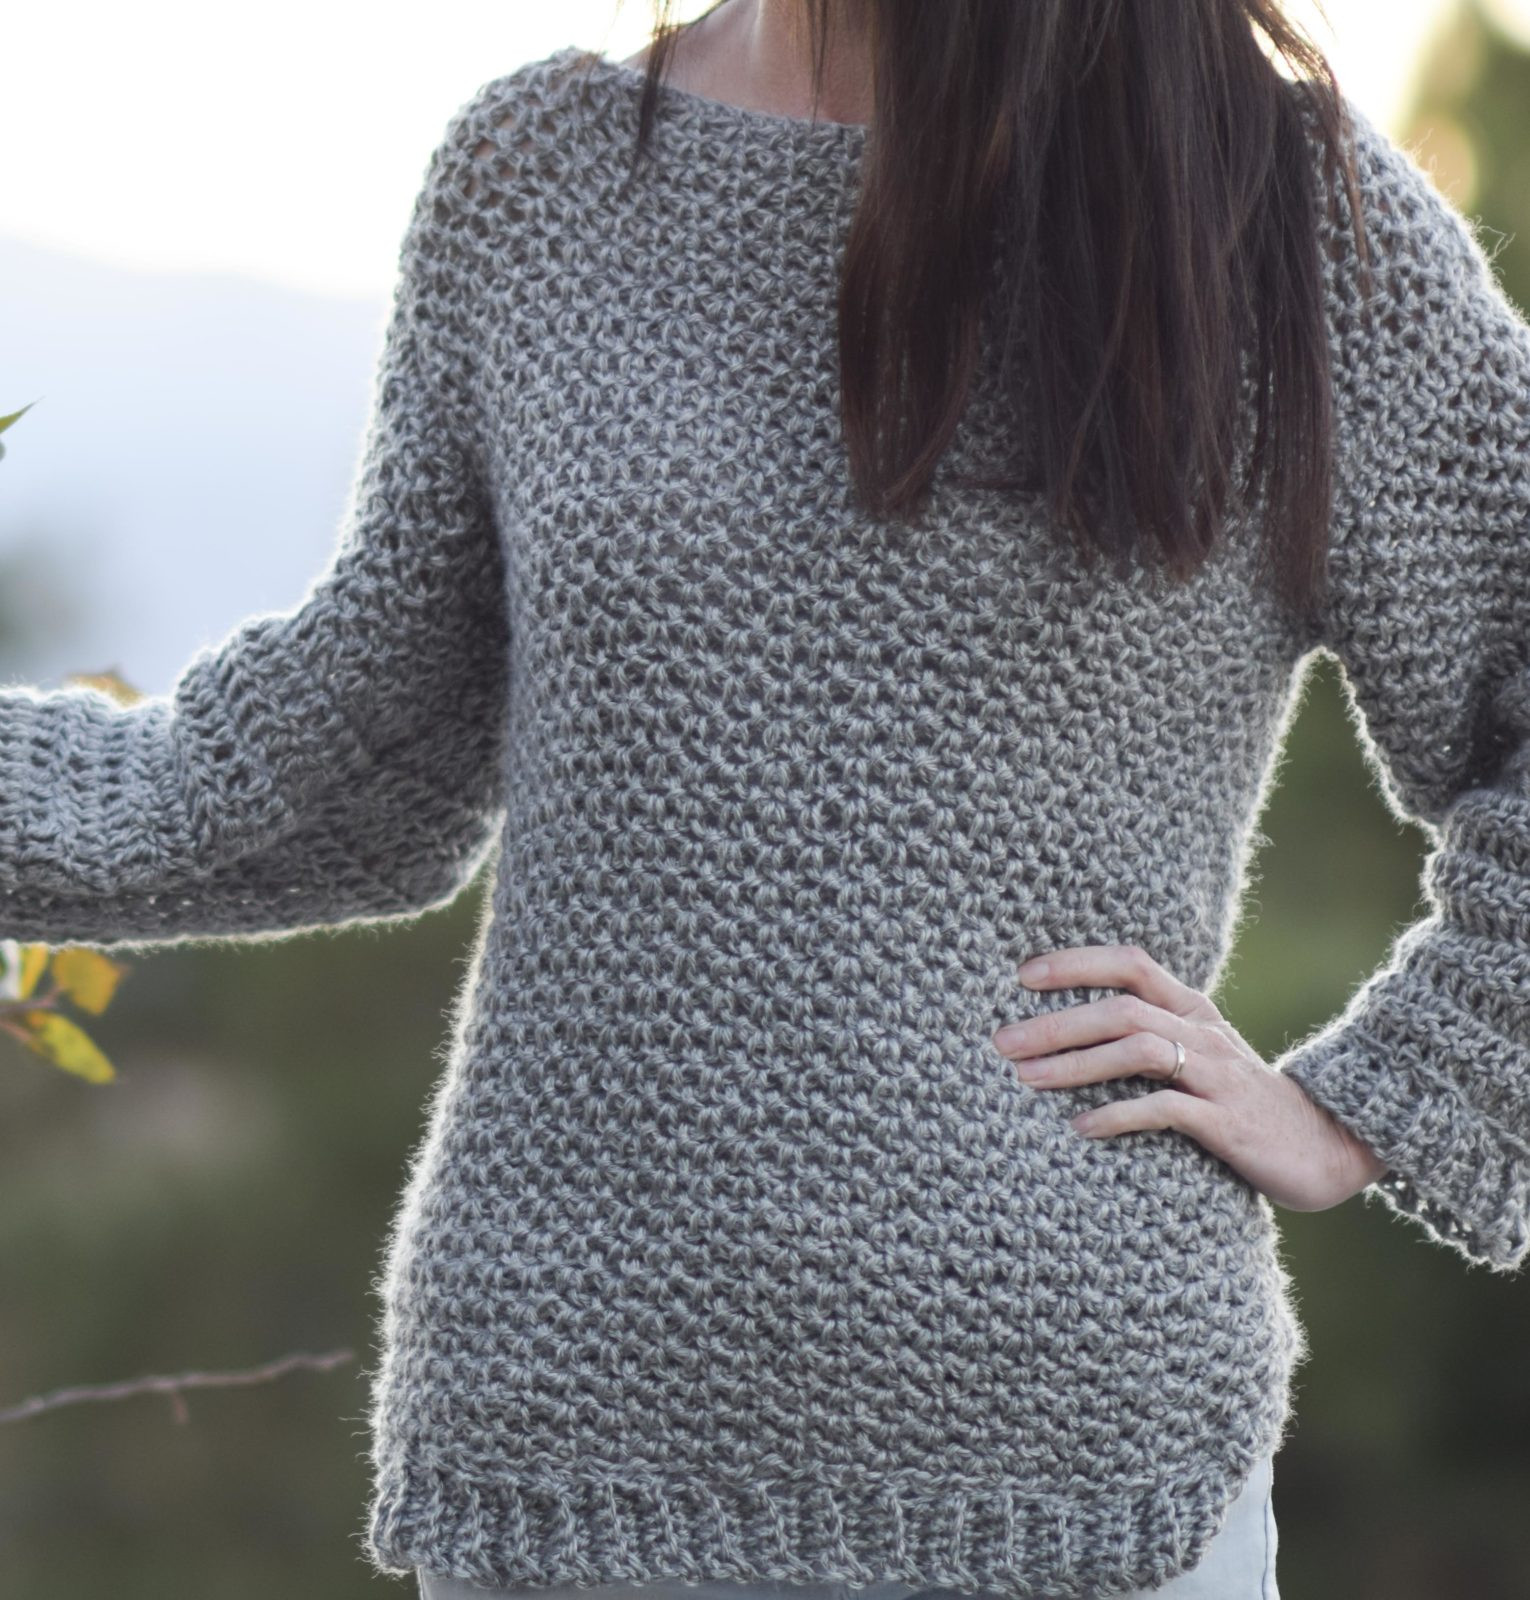 Easy Crochet Cardigan New How to Make An Easy Crocheted Sweater Knit Like – Mama Of Easy Crochet Cardigan Best Of Blue Lagoon Easy Cardigan Free Crochet Pattern